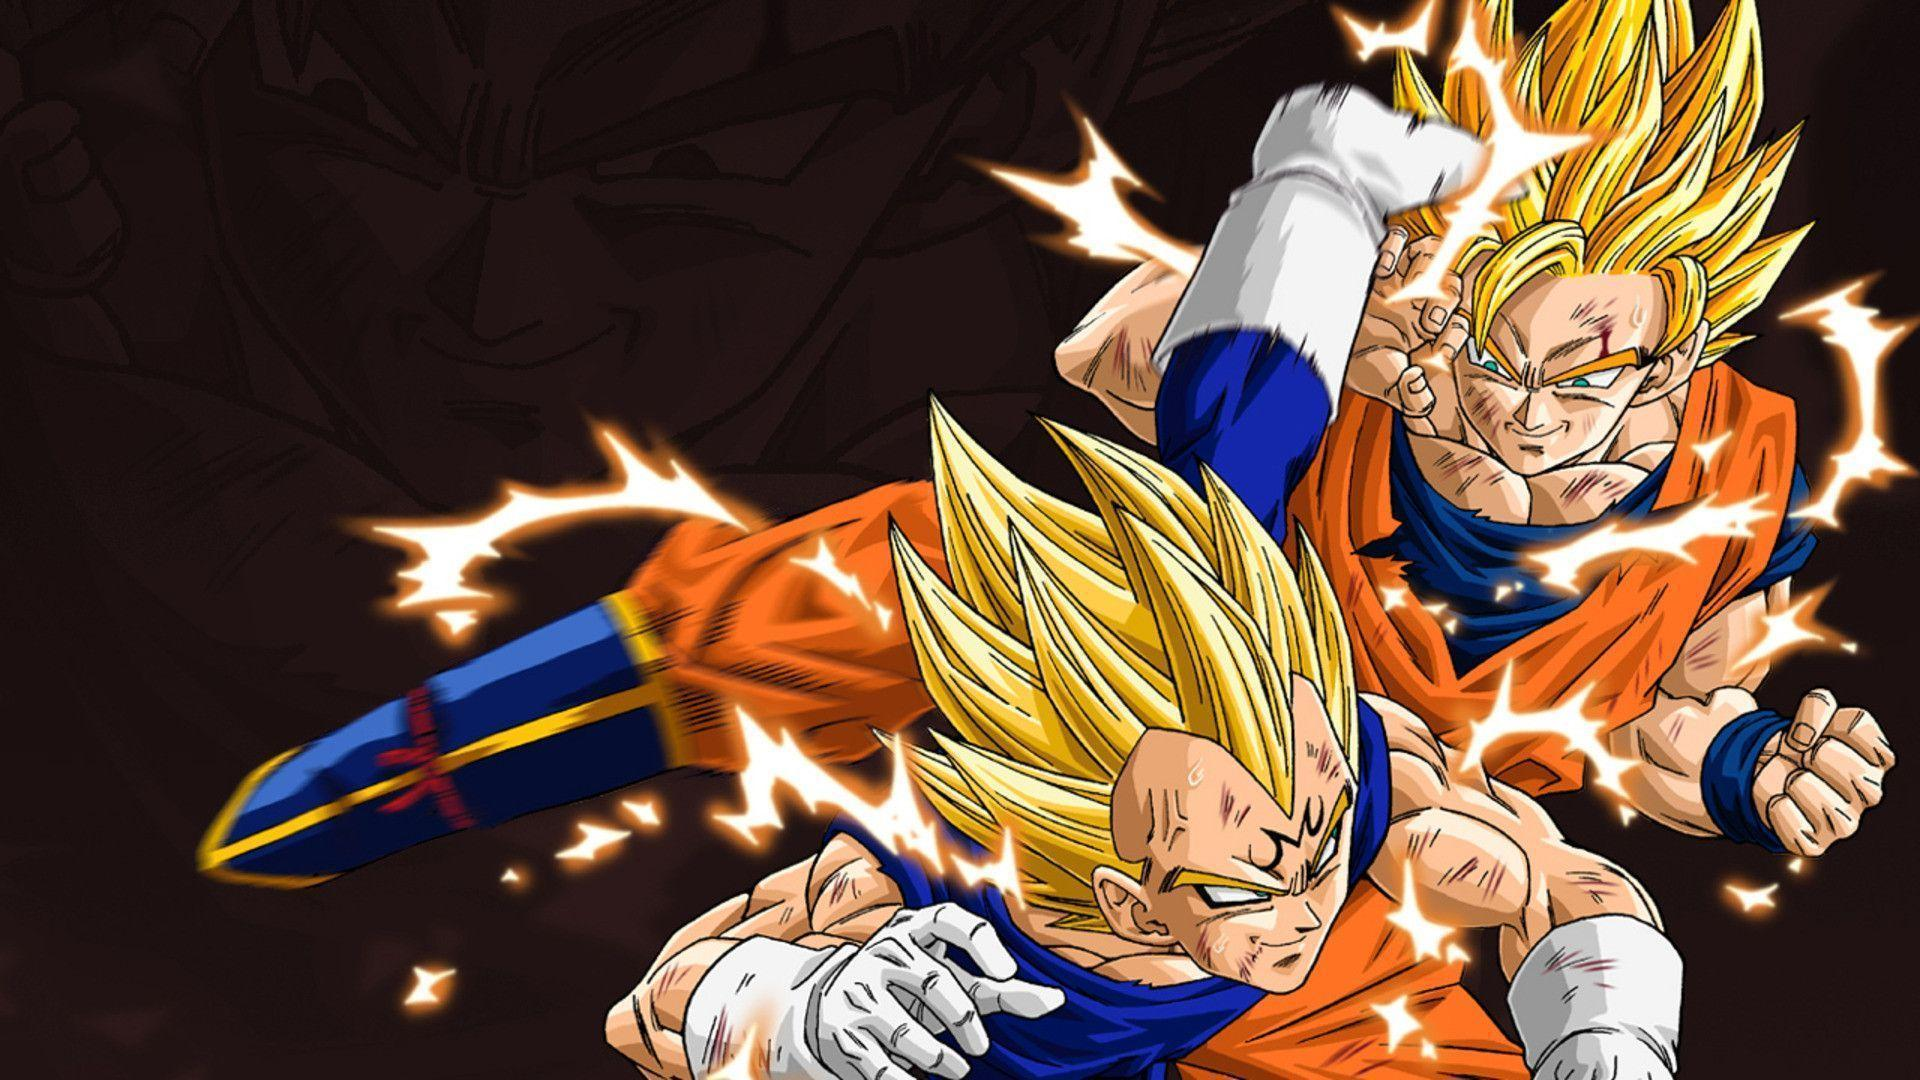 Wallpapers HD Dragon Ball Z